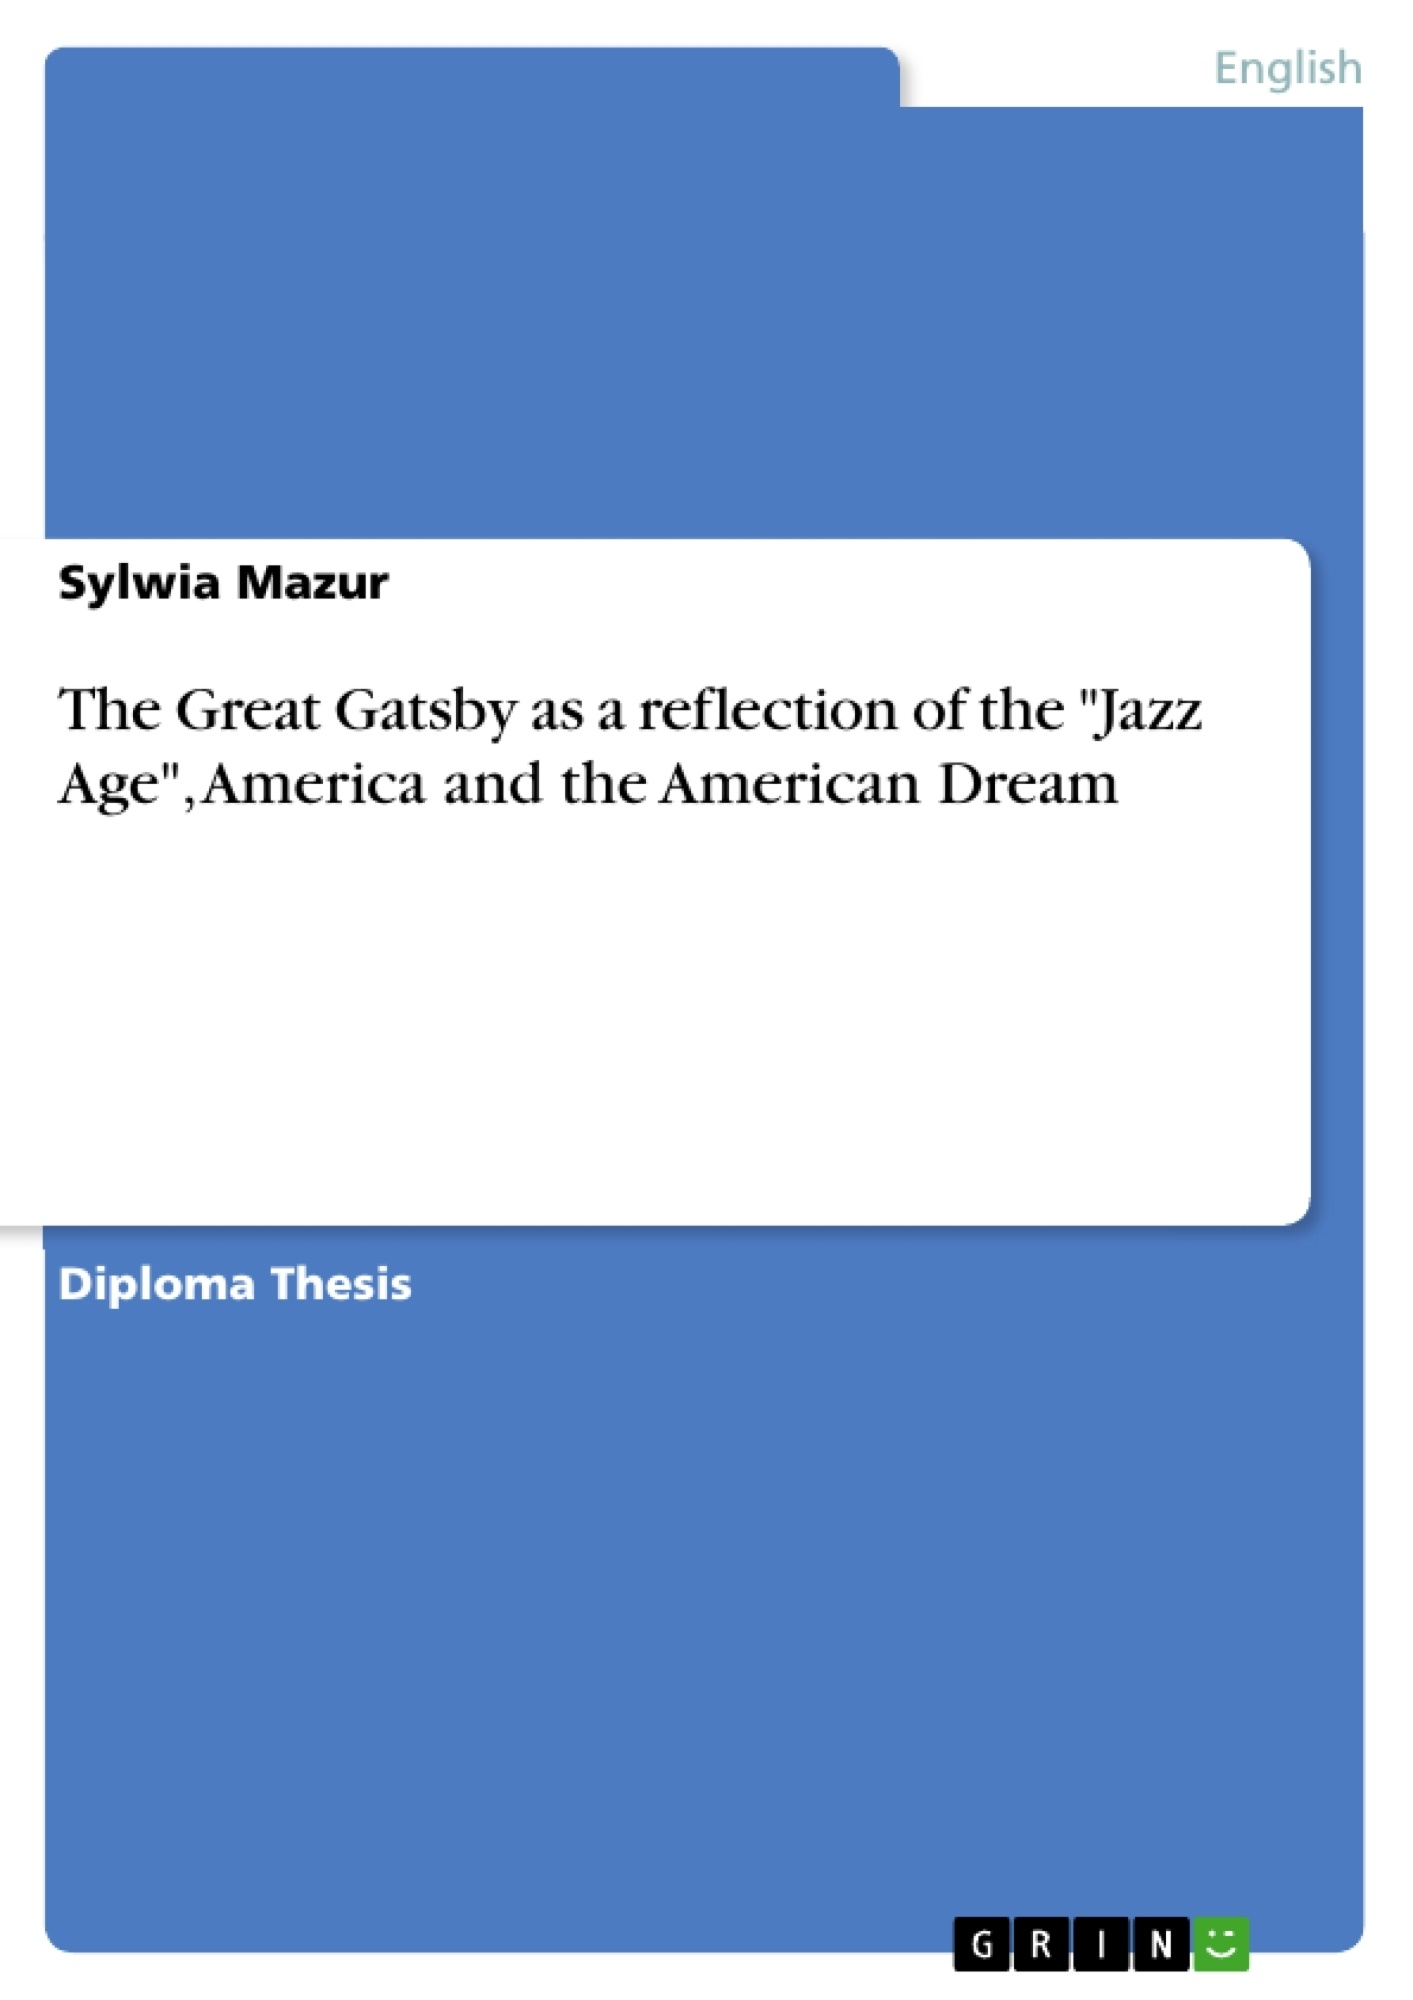 thesis statements for the great gatsby american dream